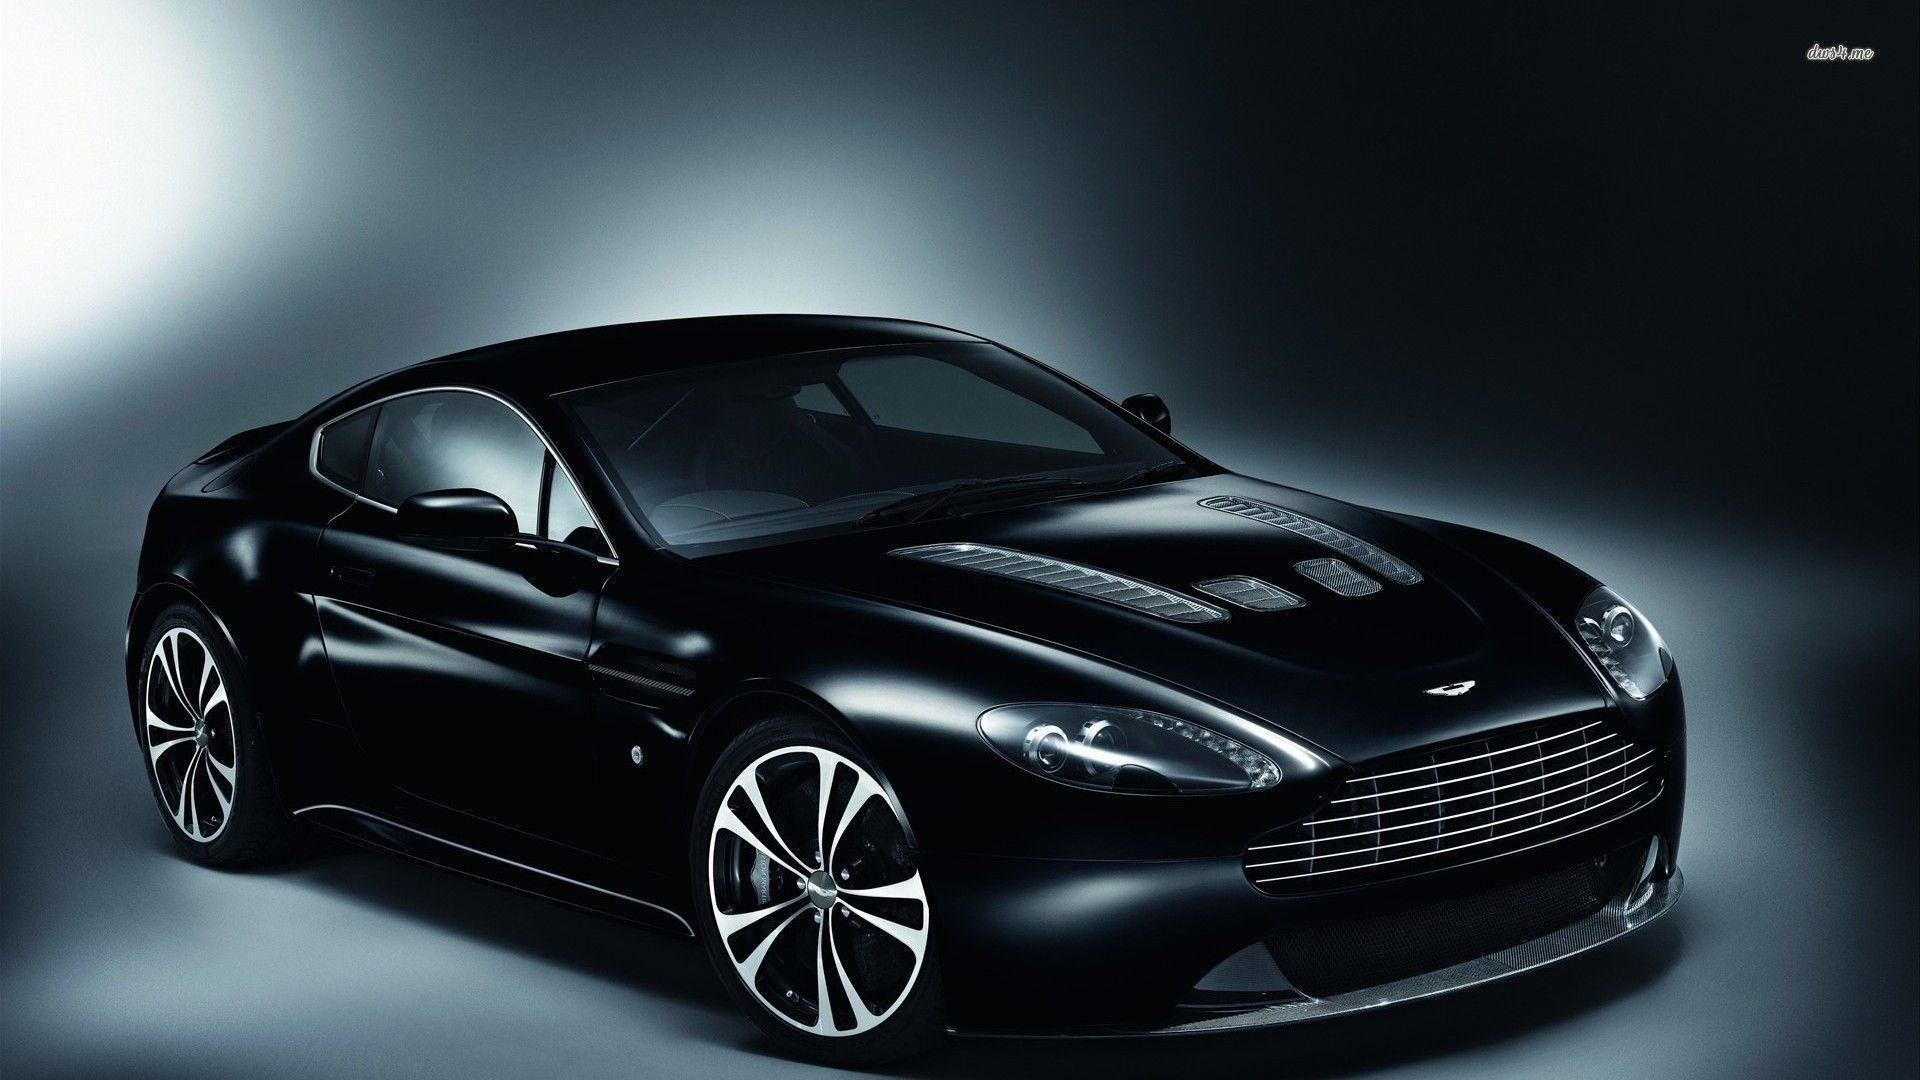 Aston Martin Vanquish Wallpapers 1920x1080